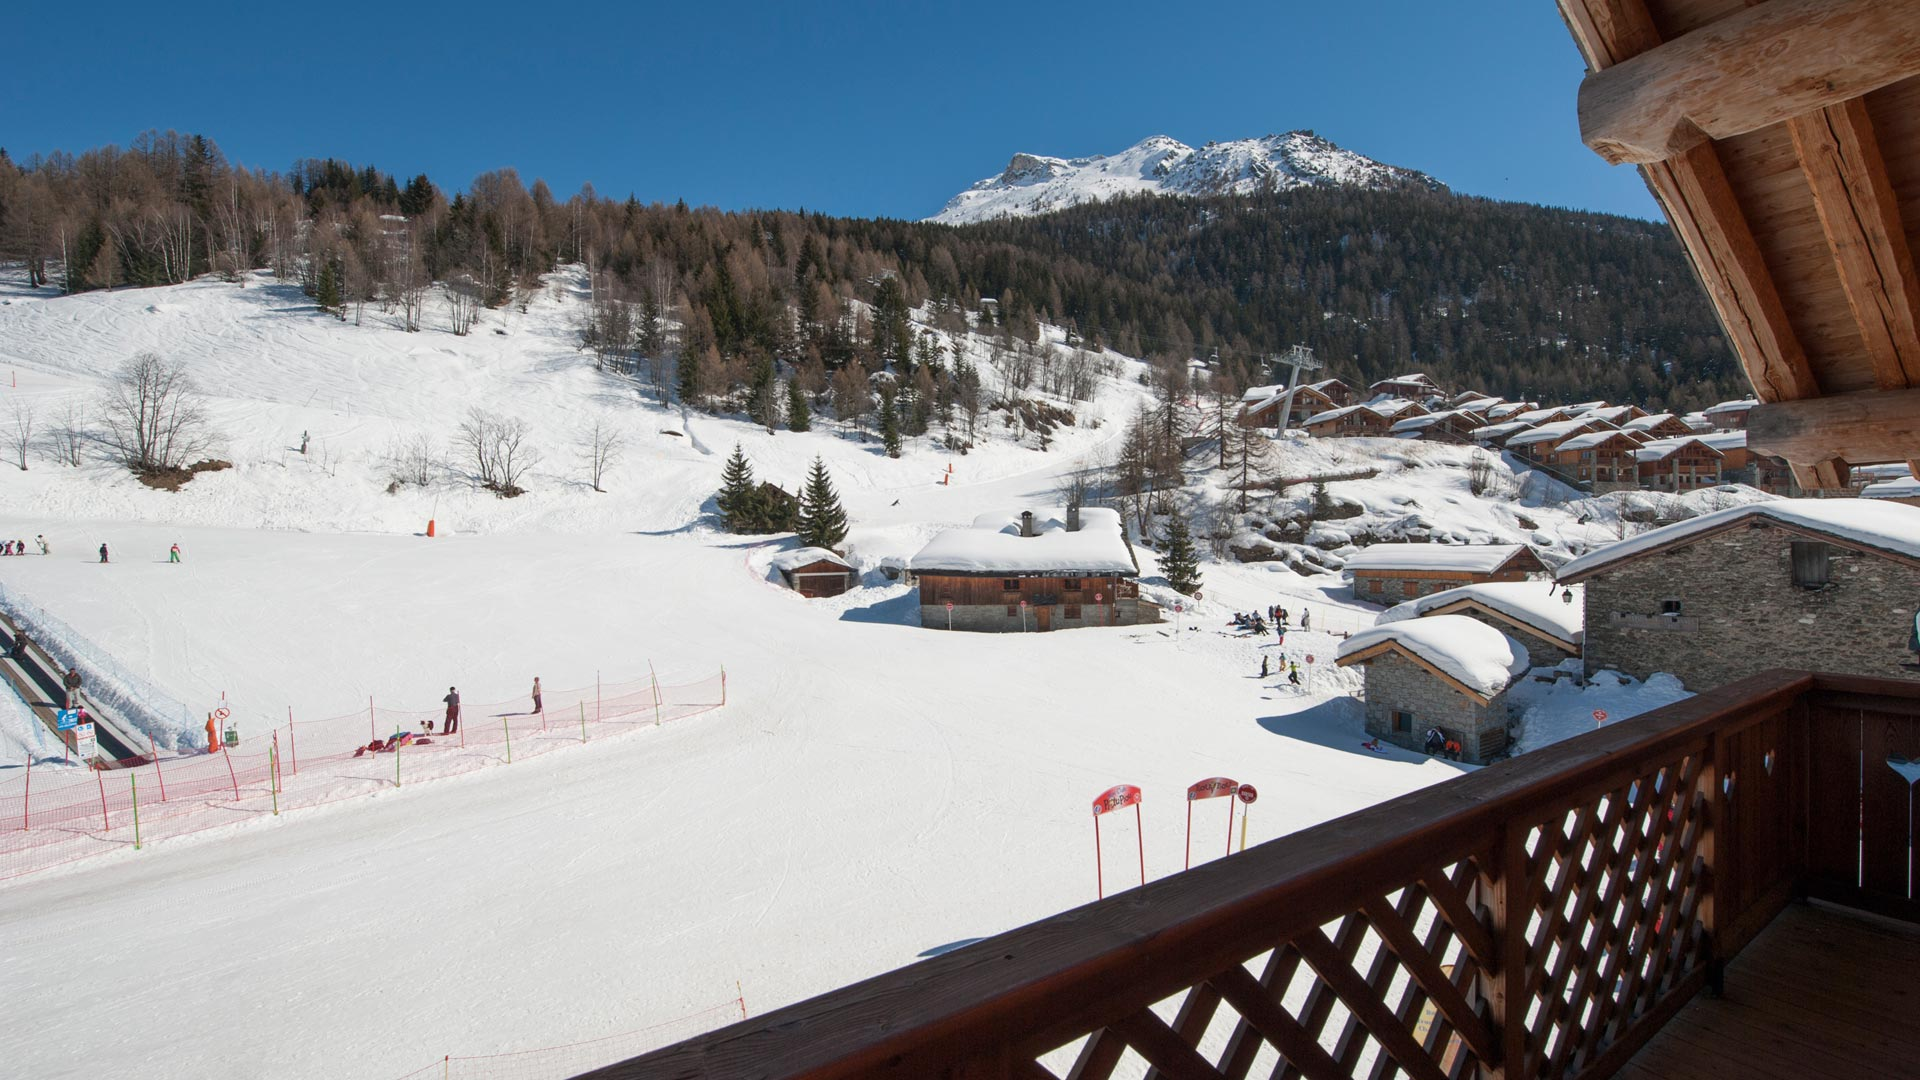 Views from the balcony of La Vanoise Chalet in Ste Foy